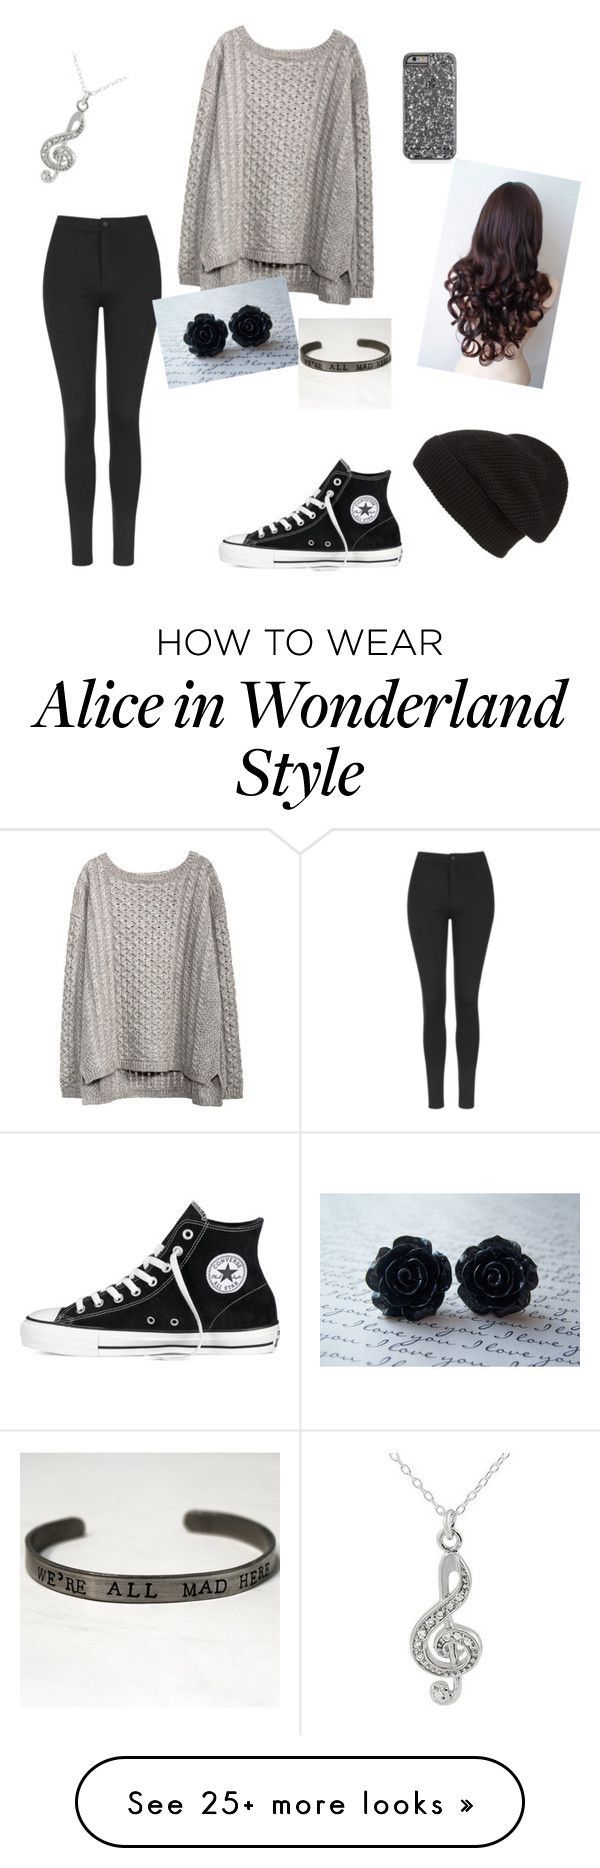 """Untitled #1"" by leiamccloud on Polyvore featuring Topshop, Converse, Phase 3 and Journee Collection"